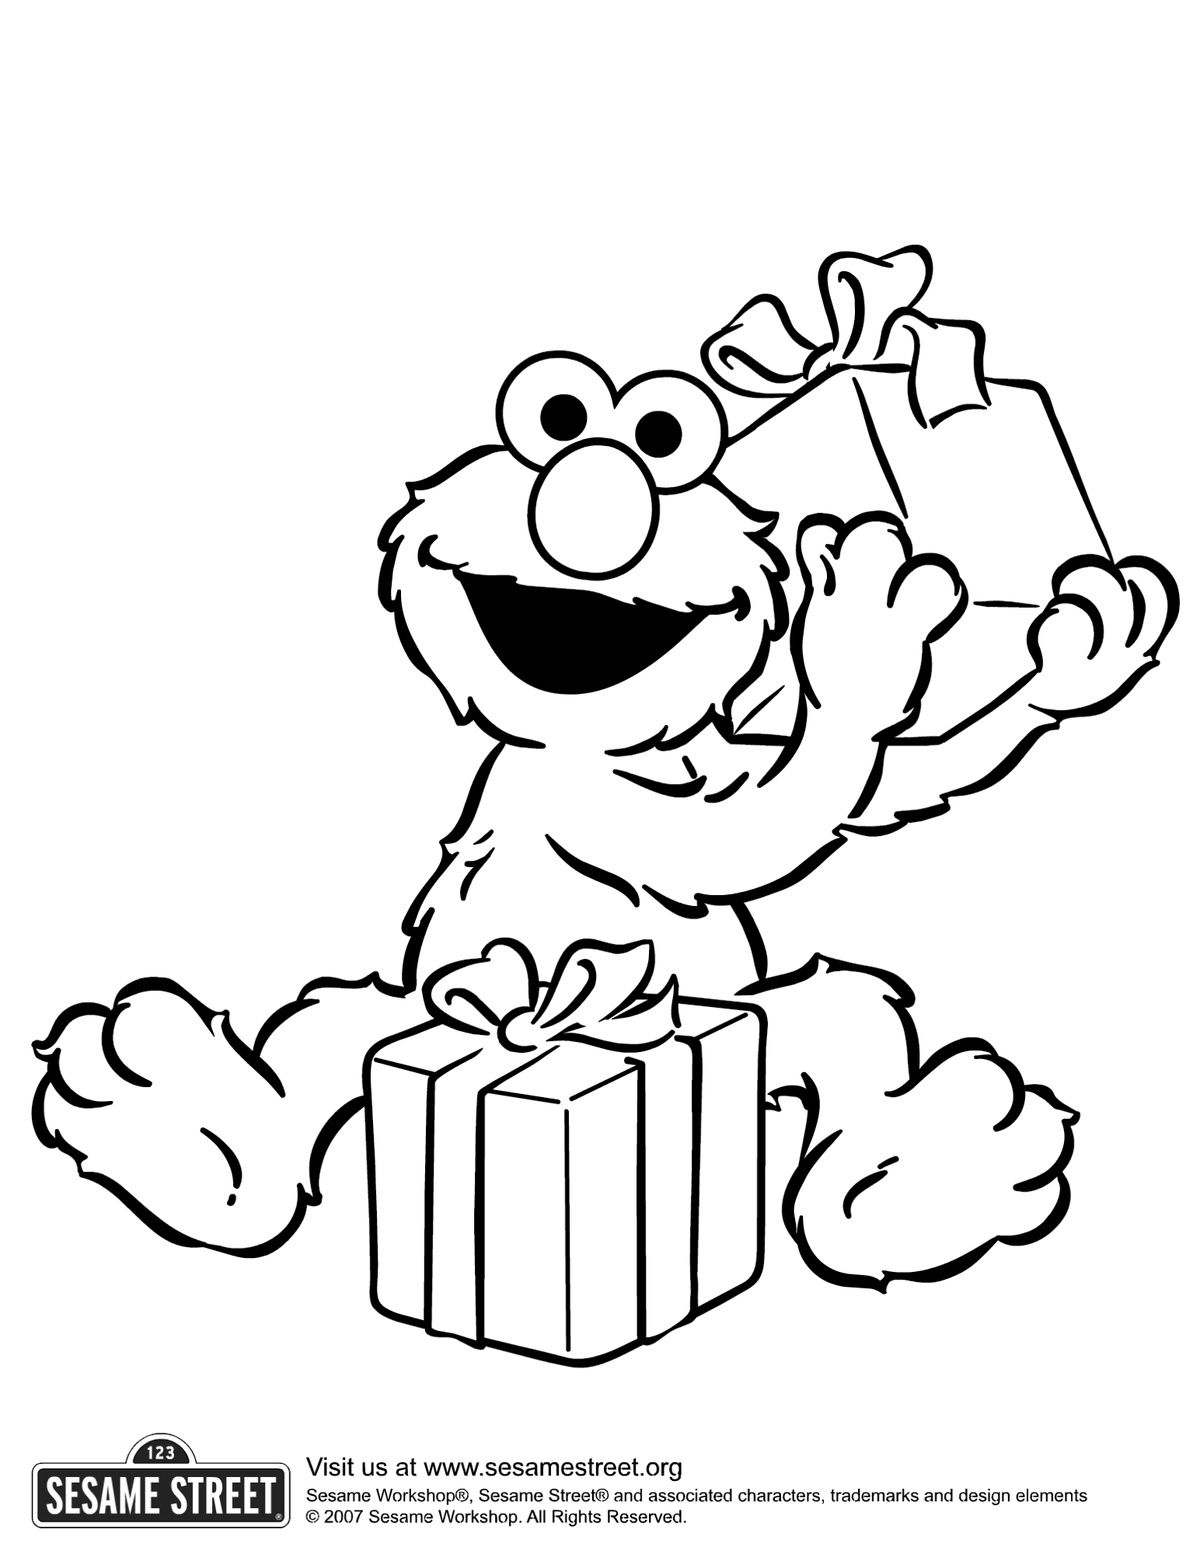 1a97c4c82ce95e49cde8e6ea2b1a3673 Jpg 1 200 1 554 Pixeles Elmo Coloring Pages Birthday Coloring Pages Happy Birthday Coloring Pages